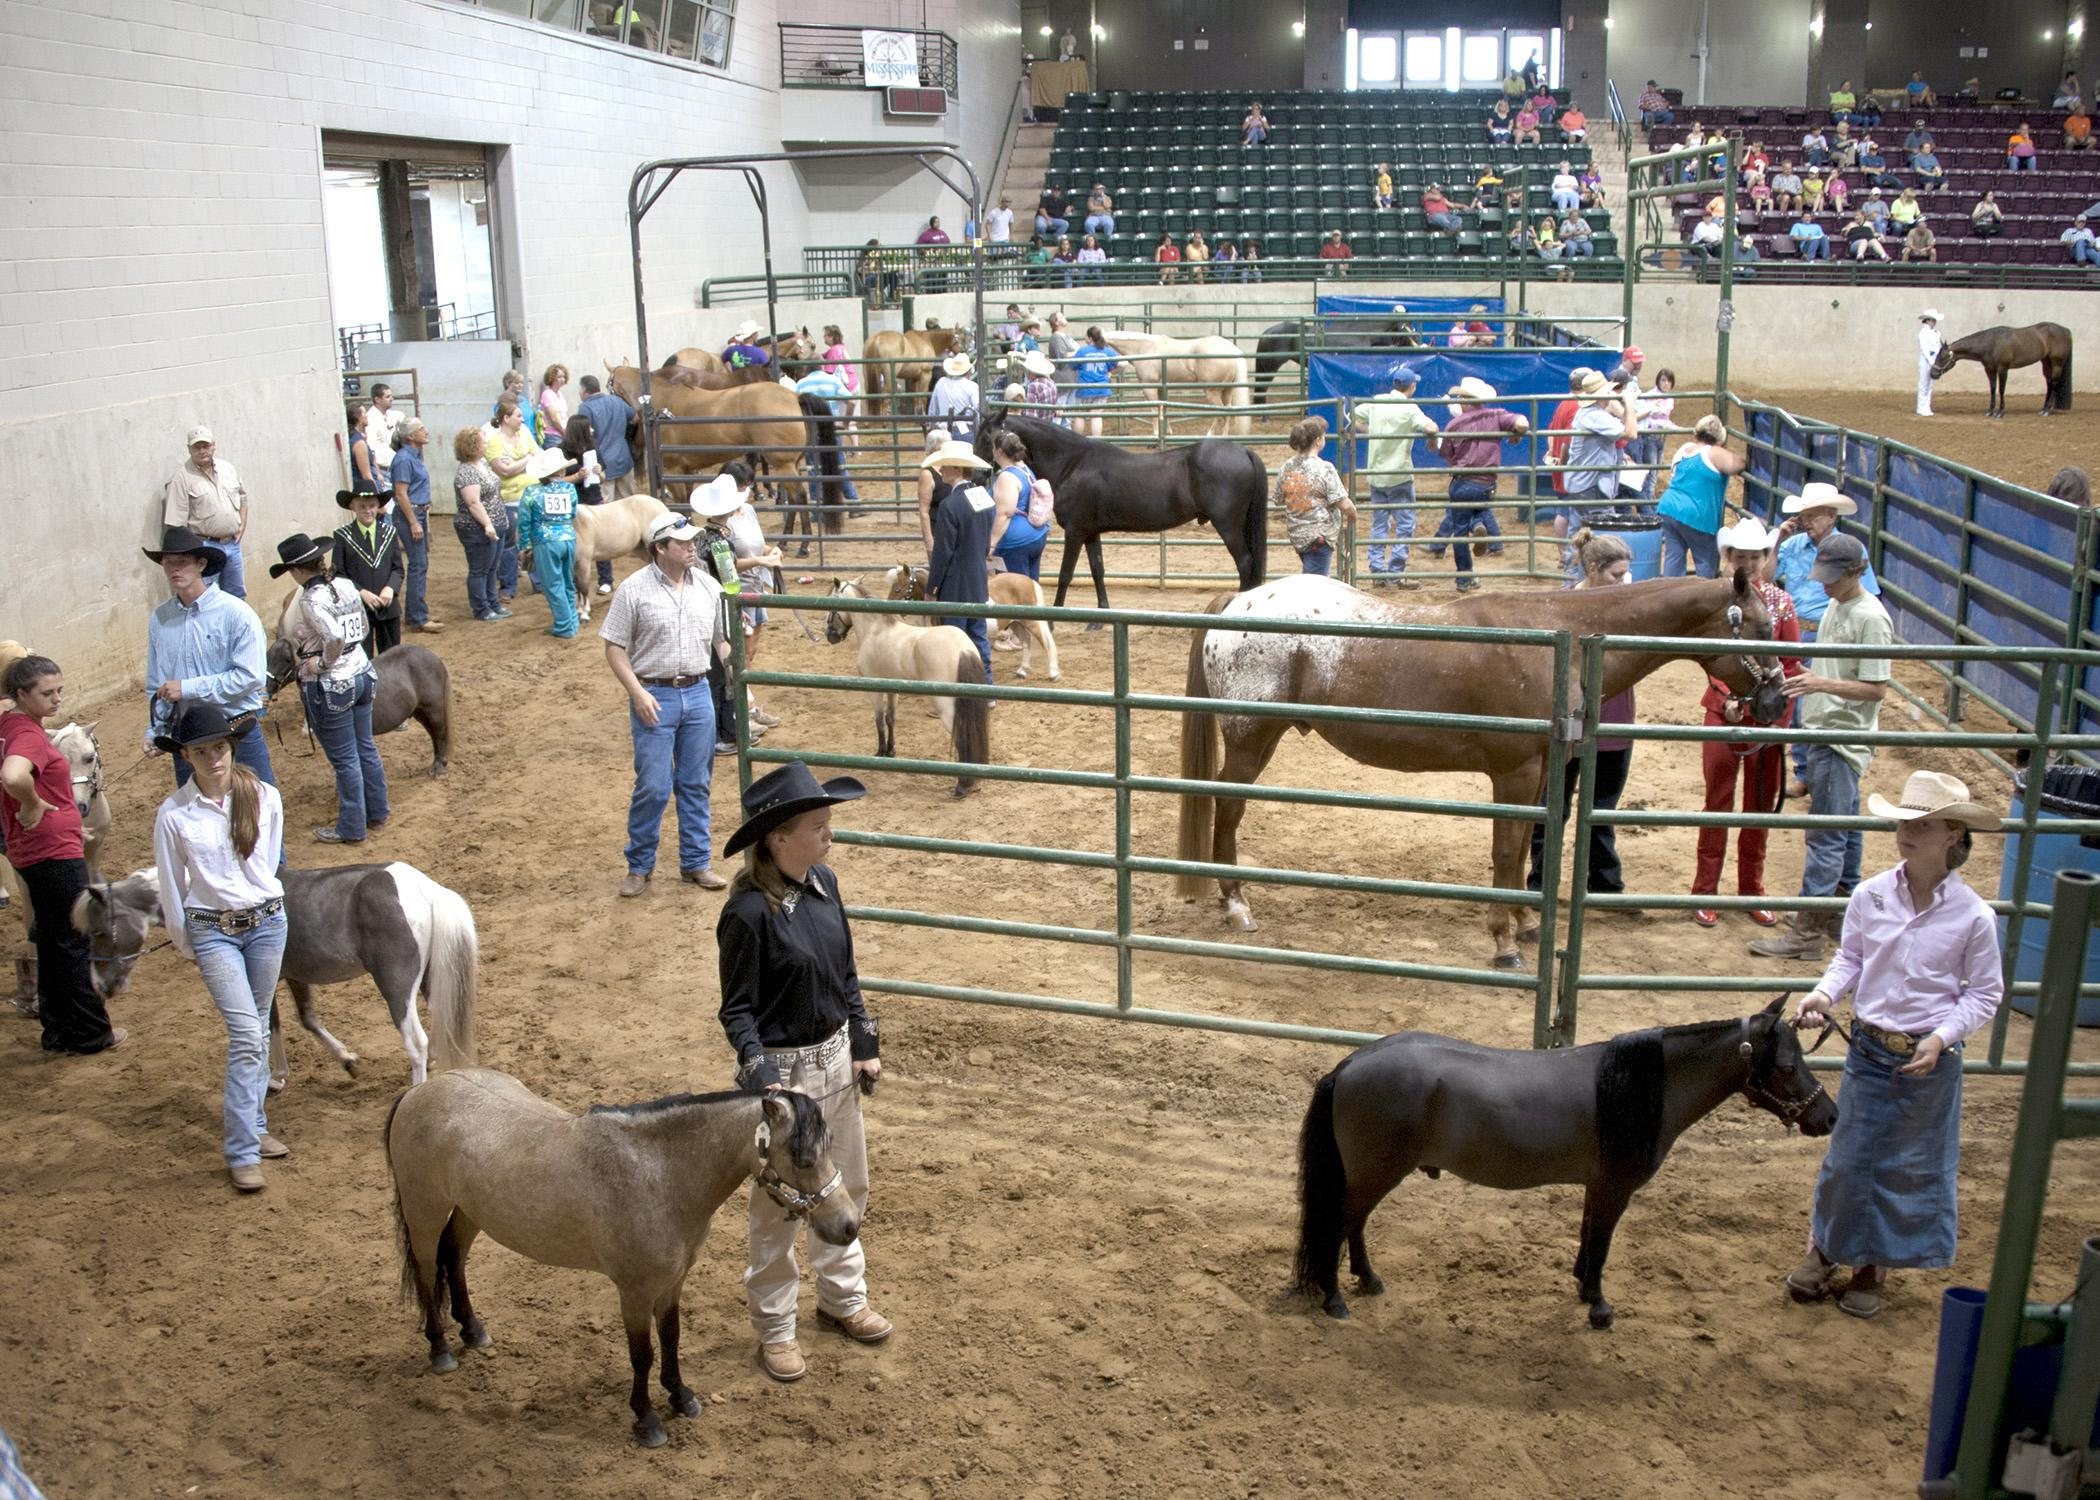 Mississippi junior and senior 4-H'ers prepare to enter the ring for the selection of grand and reserve grand champion pony mares, registered American quarter horse mares, grade western mares, and registered paint mares on June 28 during the 2013 4-H Horse Championship at the Mississippi State Fairgrounds in Jackson. (Photo by MSU Ag Communications/Kat Lawrence)